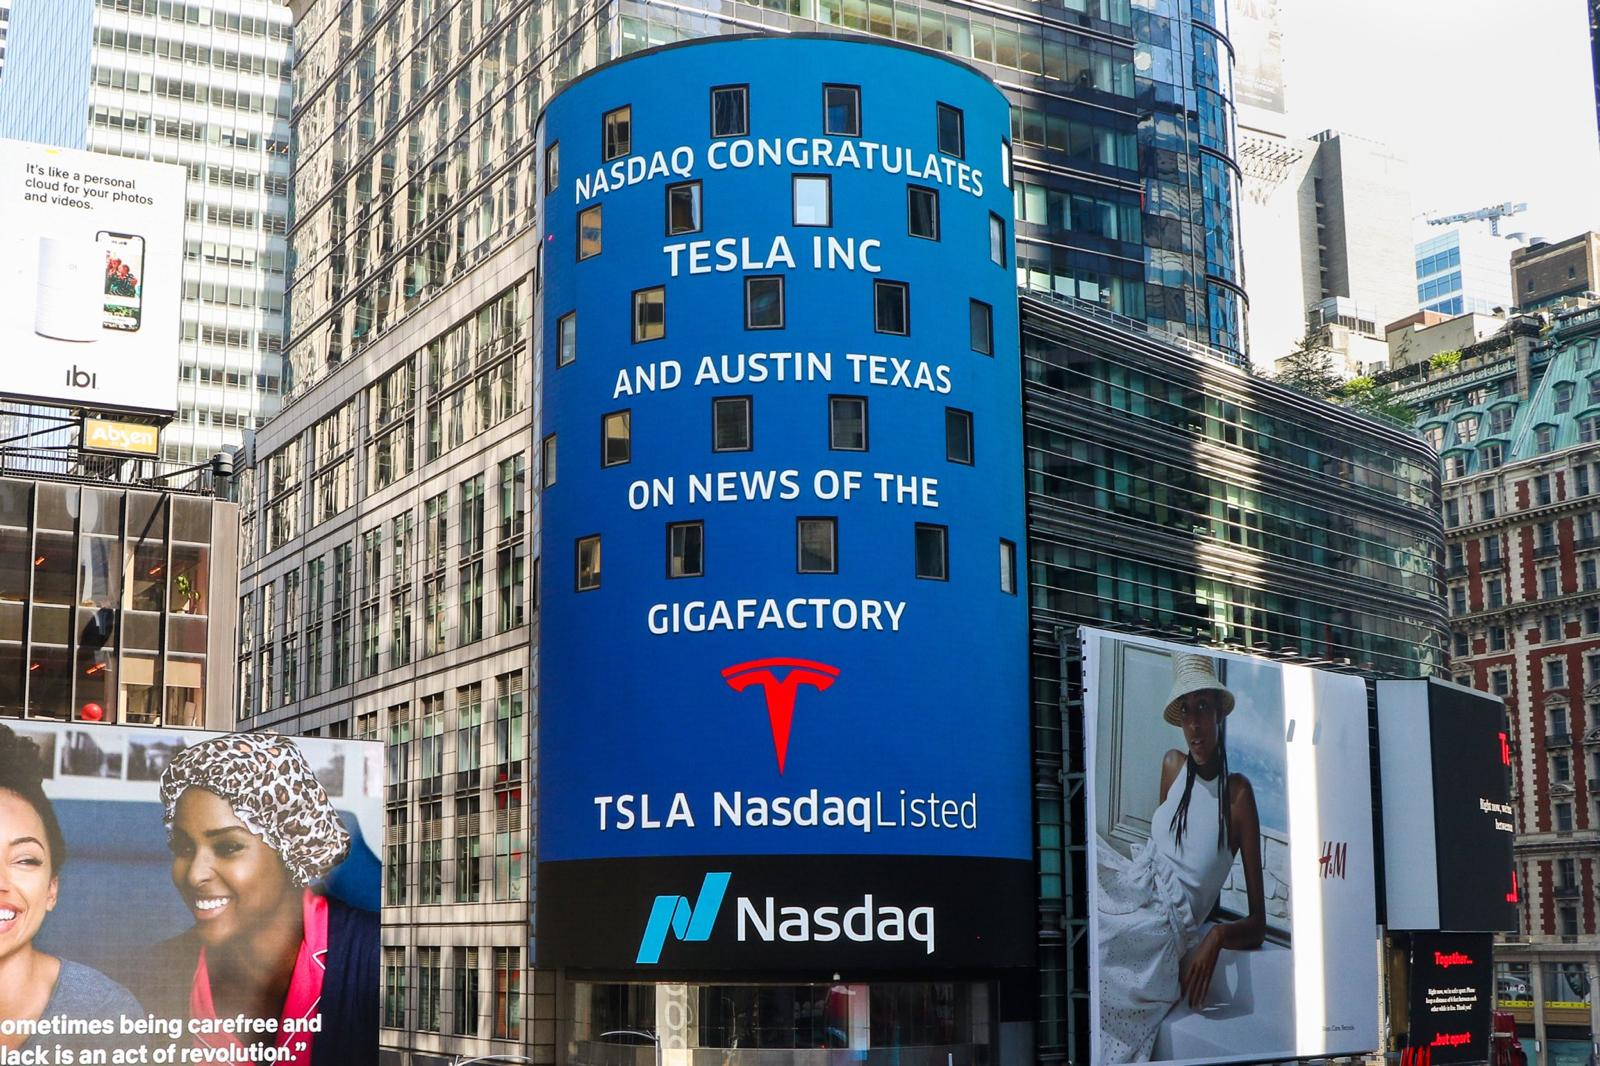 NASDAQ Congratulates Tesla and Austin Texas in Times Square on New Gigafactory